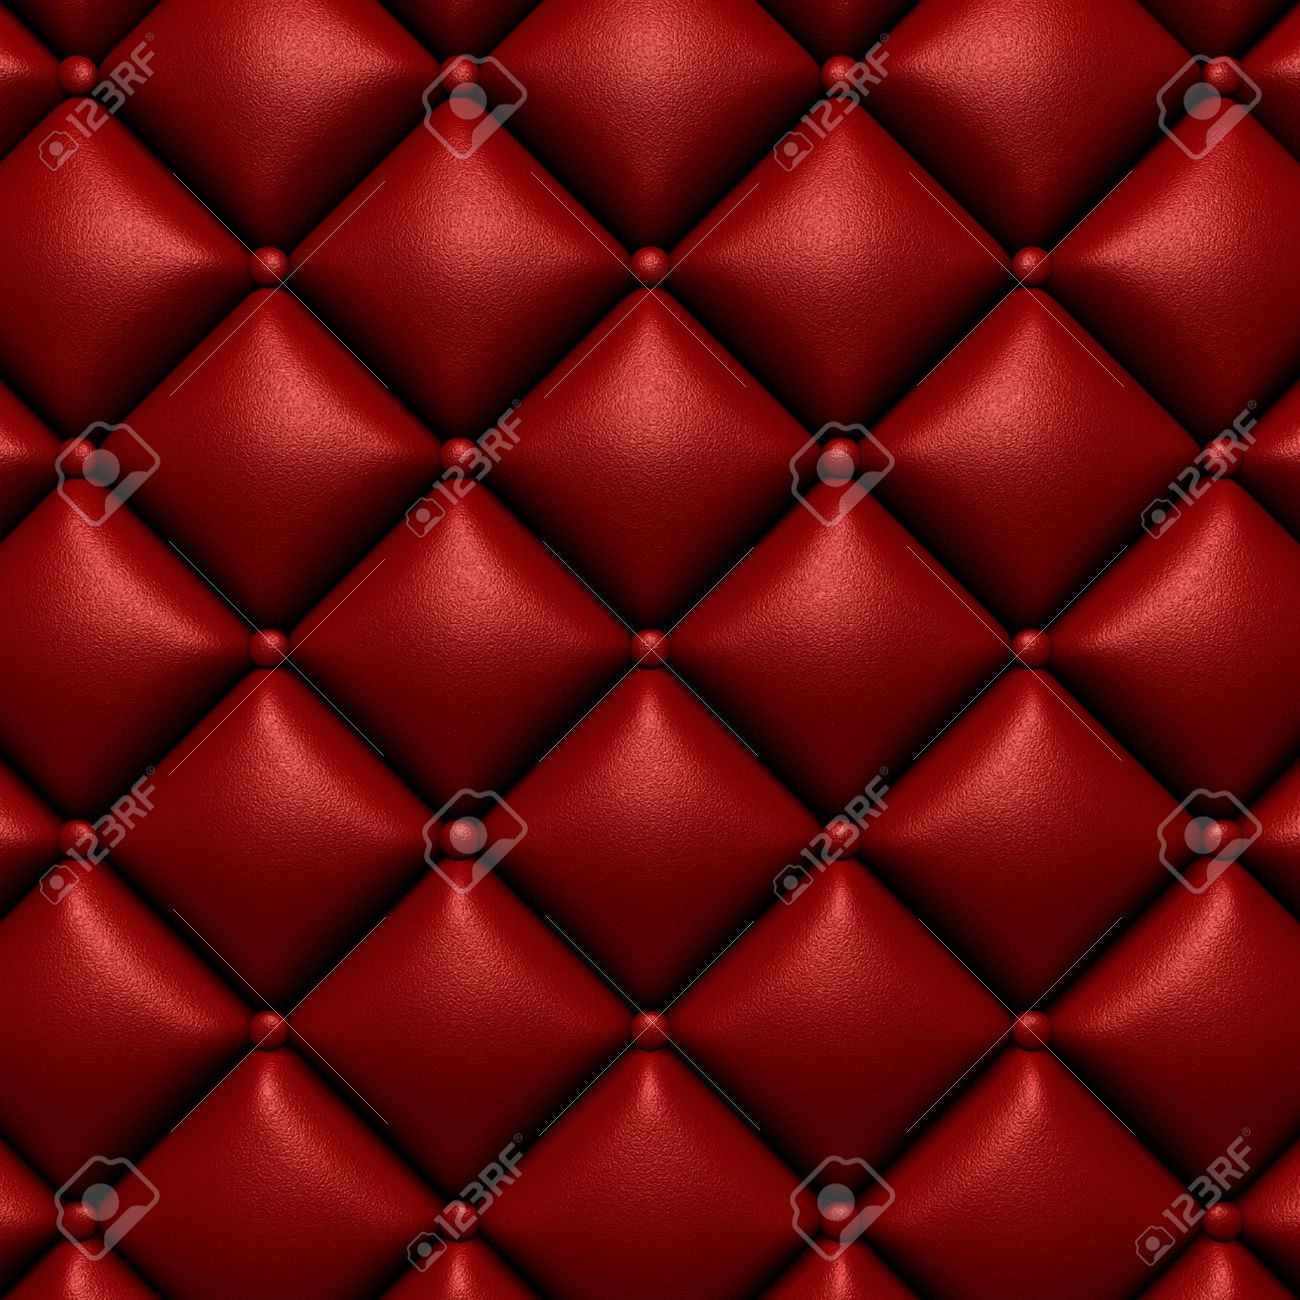 Leather cushion texture - Cushion Texture Furnishing Leather Texture